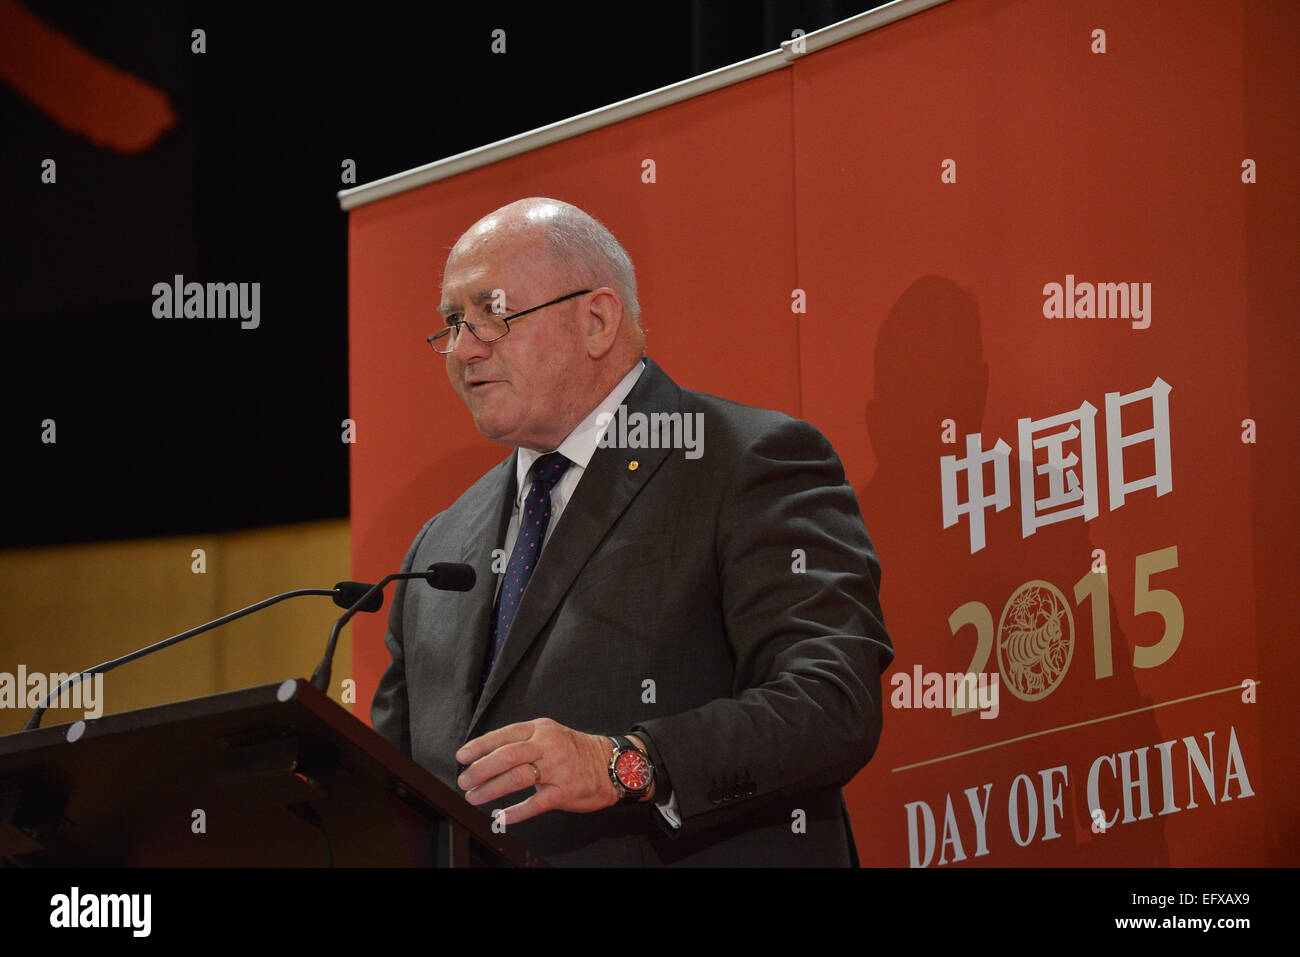 (150211) -- CANBERRA, Feb. 11, 2015 (Xinhua) -- Australian Governor-General Peter Cosgrove speaks before the 'Day - Stock Image